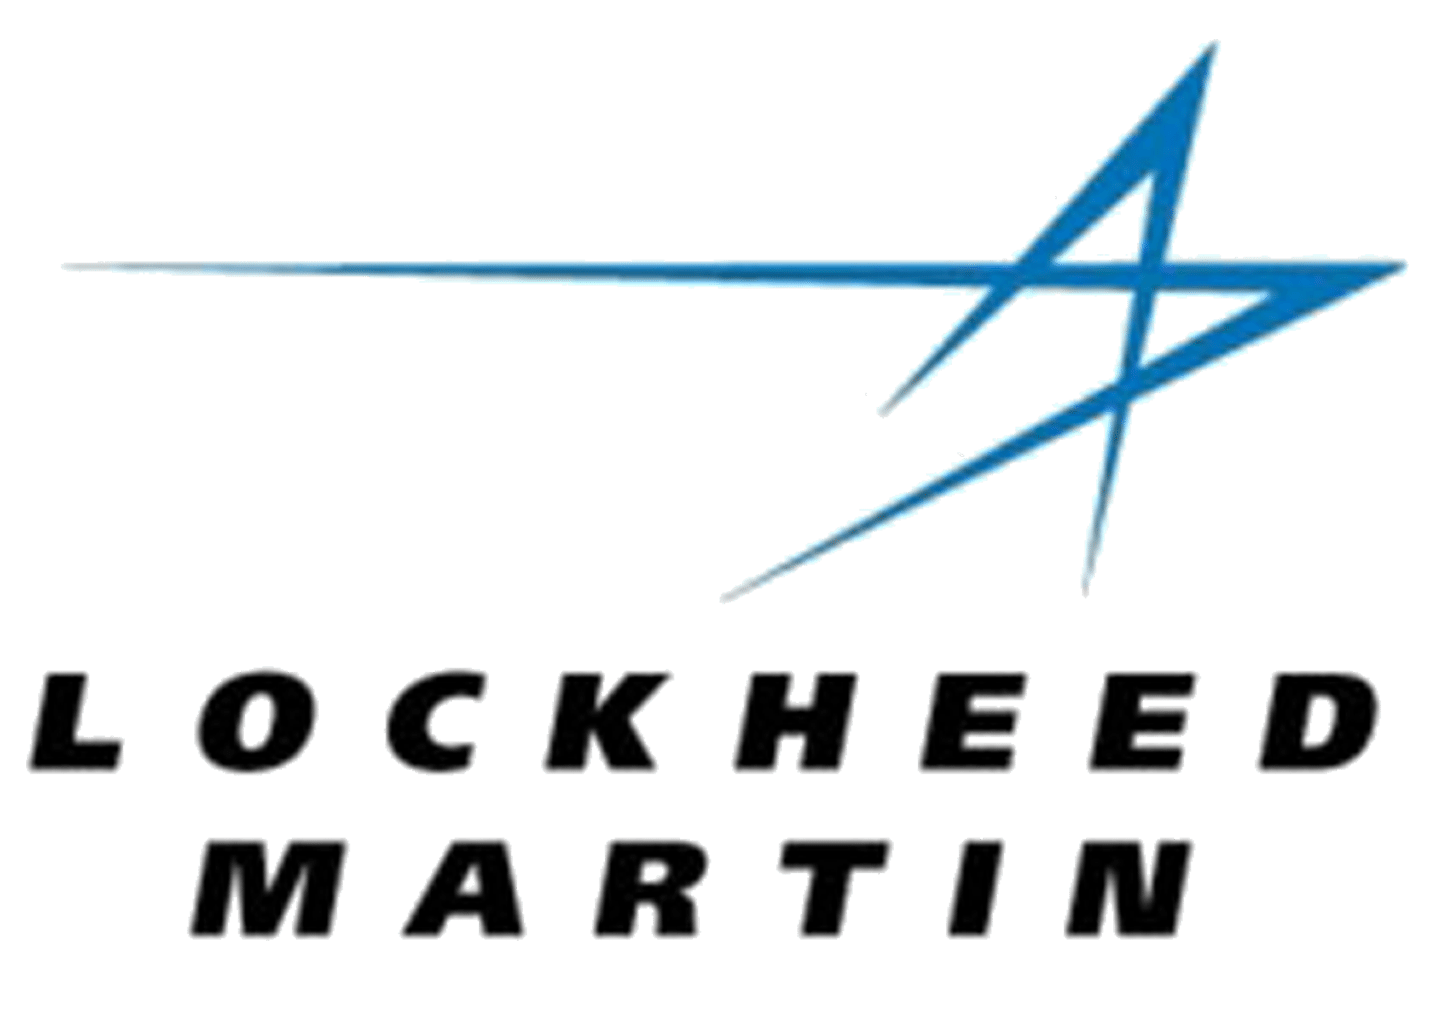 Lockheed Martin Stocks rate high in ESG. Portola Creek - Investment Managers in ESG